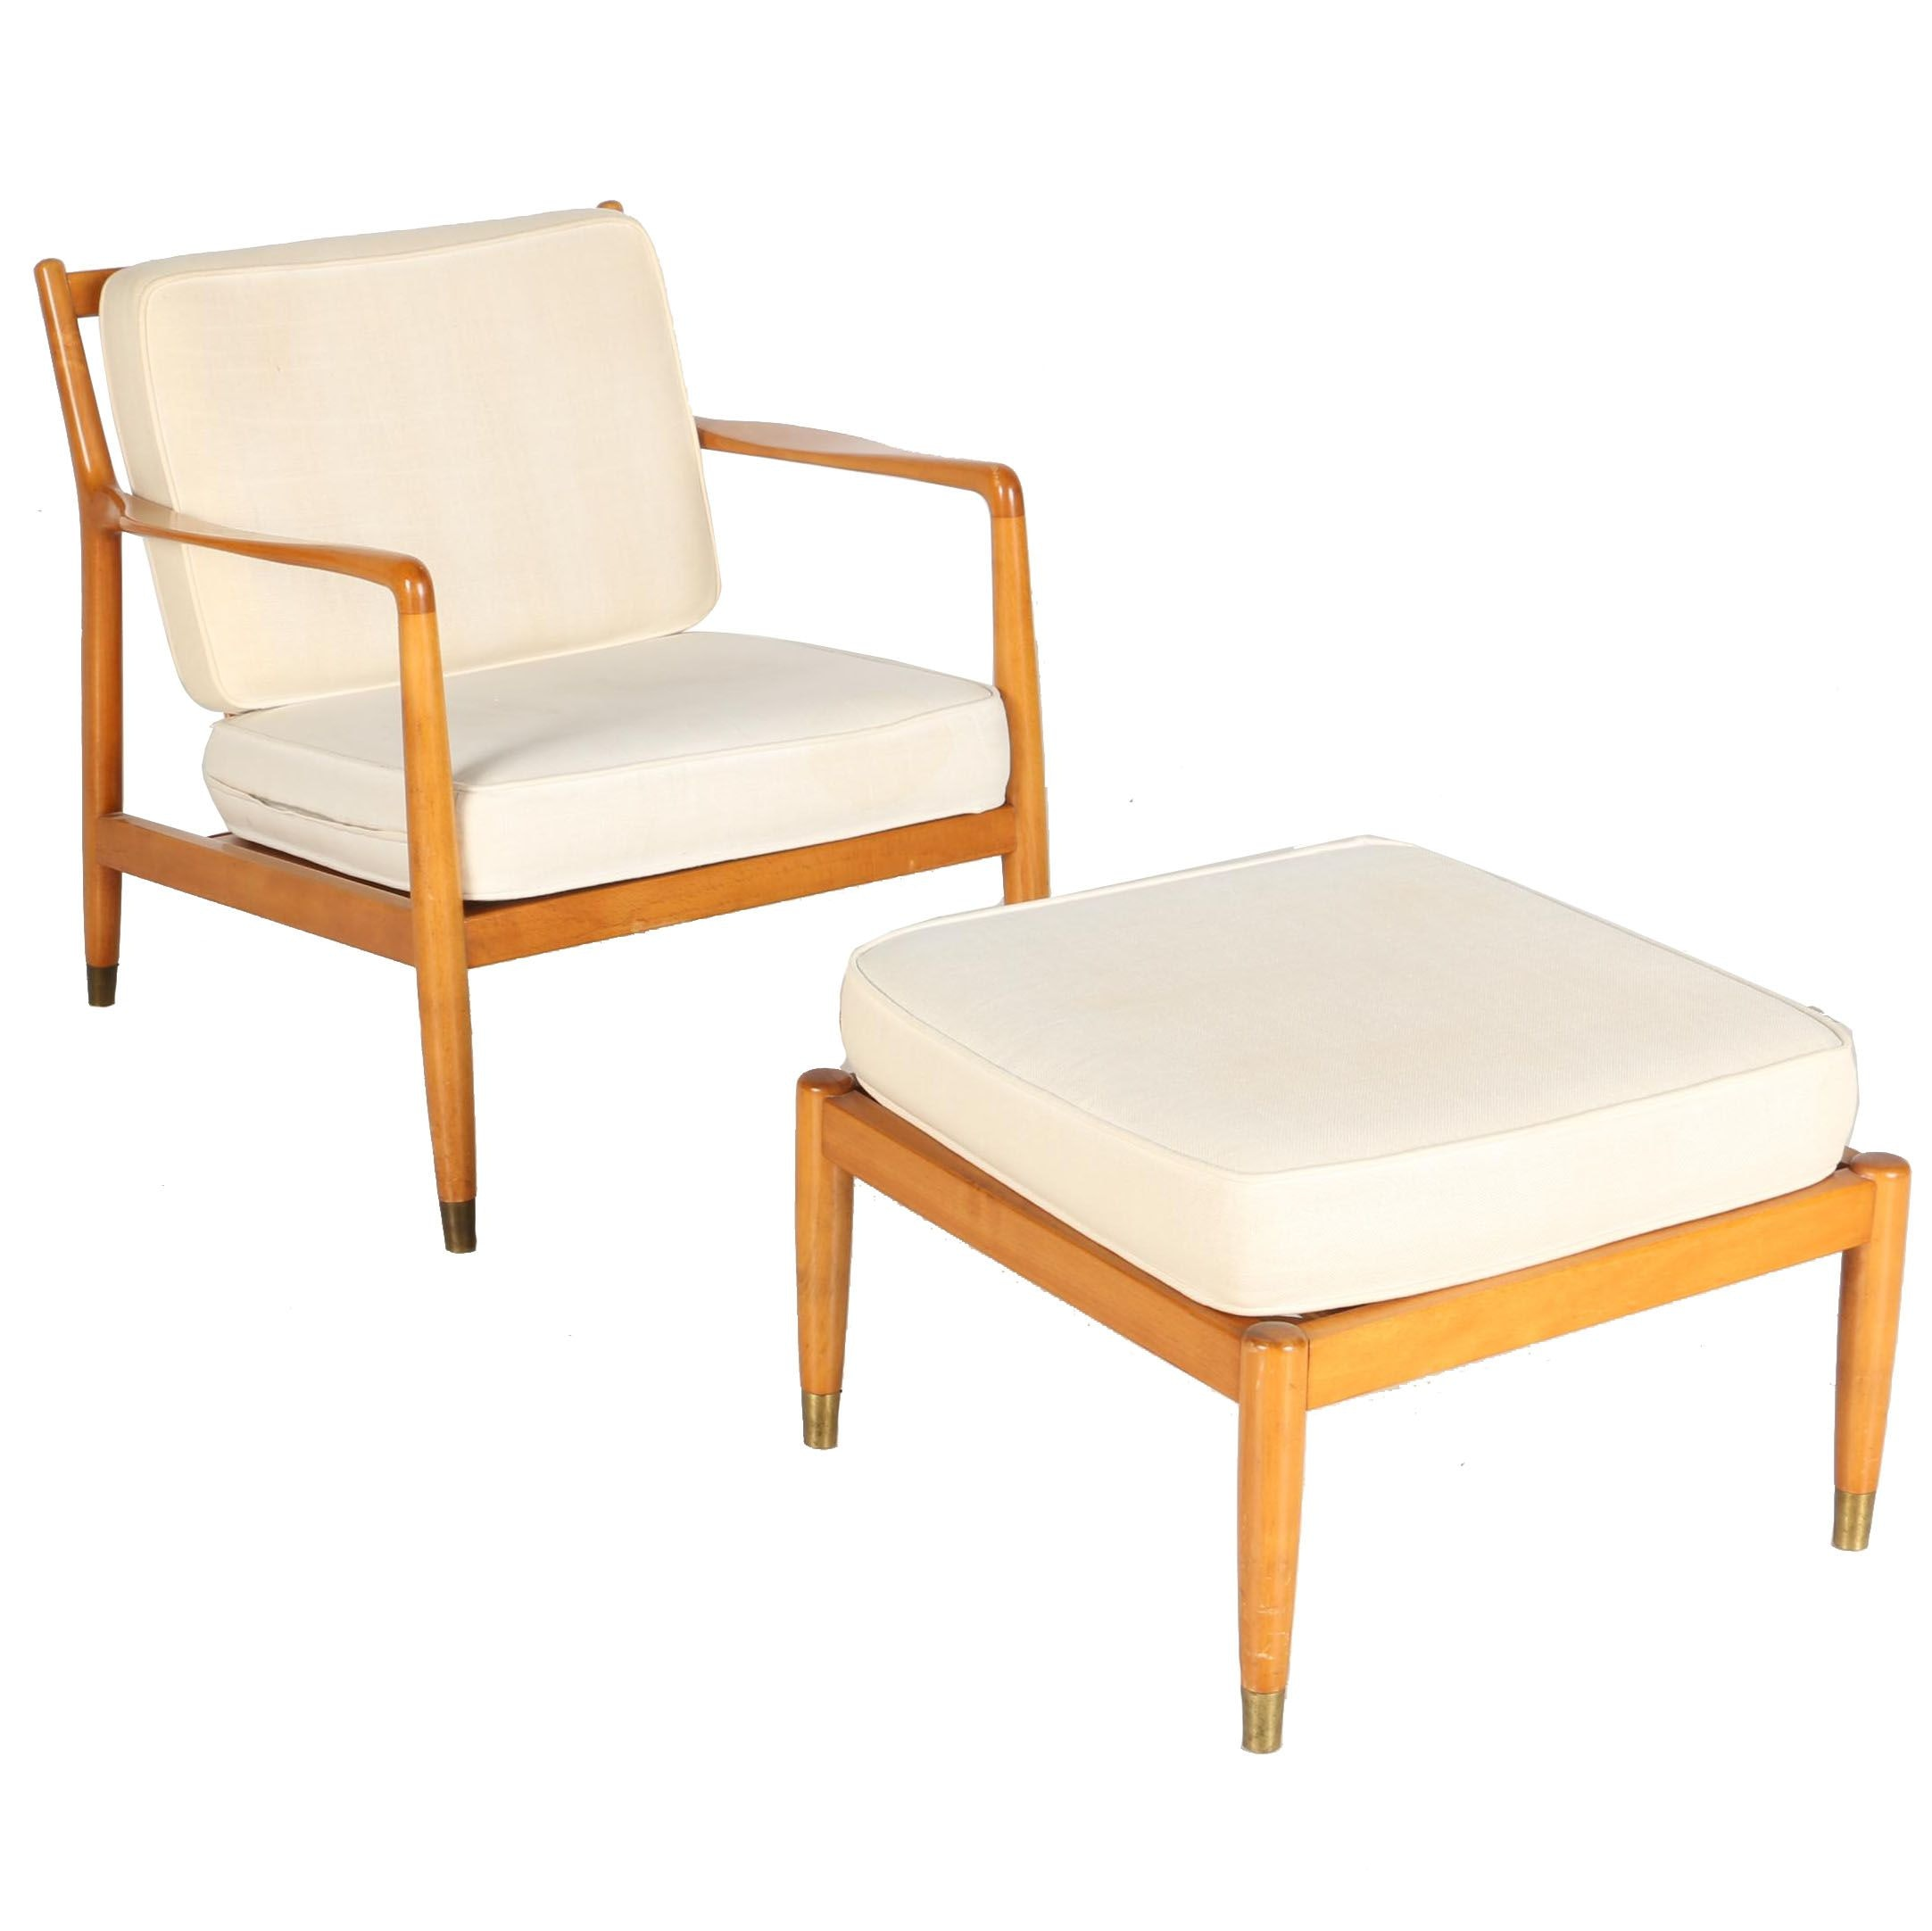 White Danish Modern Chair with Matching Ottoman